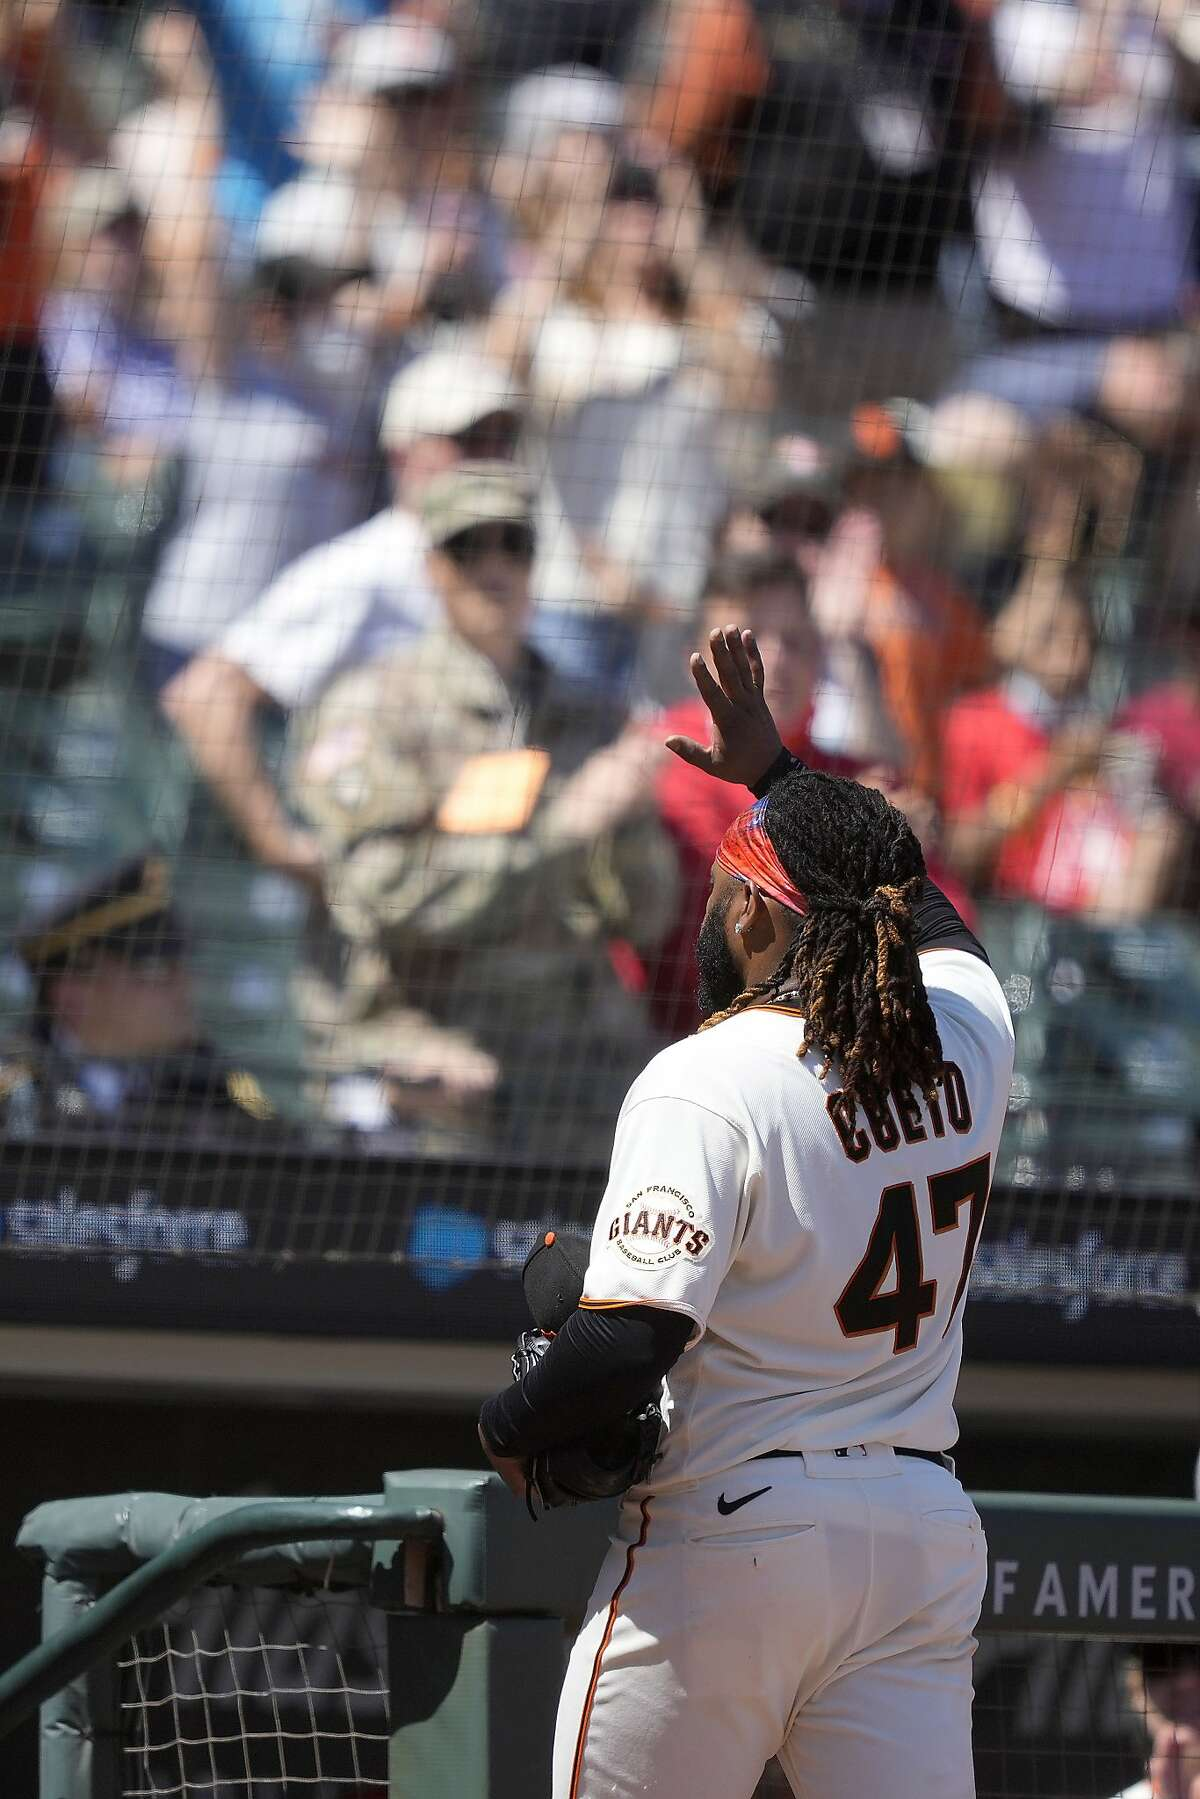 San Francisco Giants pitcher Johnny Cueto (47) waves to the crowd as he walks off the field at the end of the top of the seventh inning against the Los Angeles Angels in a baseball game Monday, May 31, 2021, in San Francisco. (AP Photo/Tony Avelar)